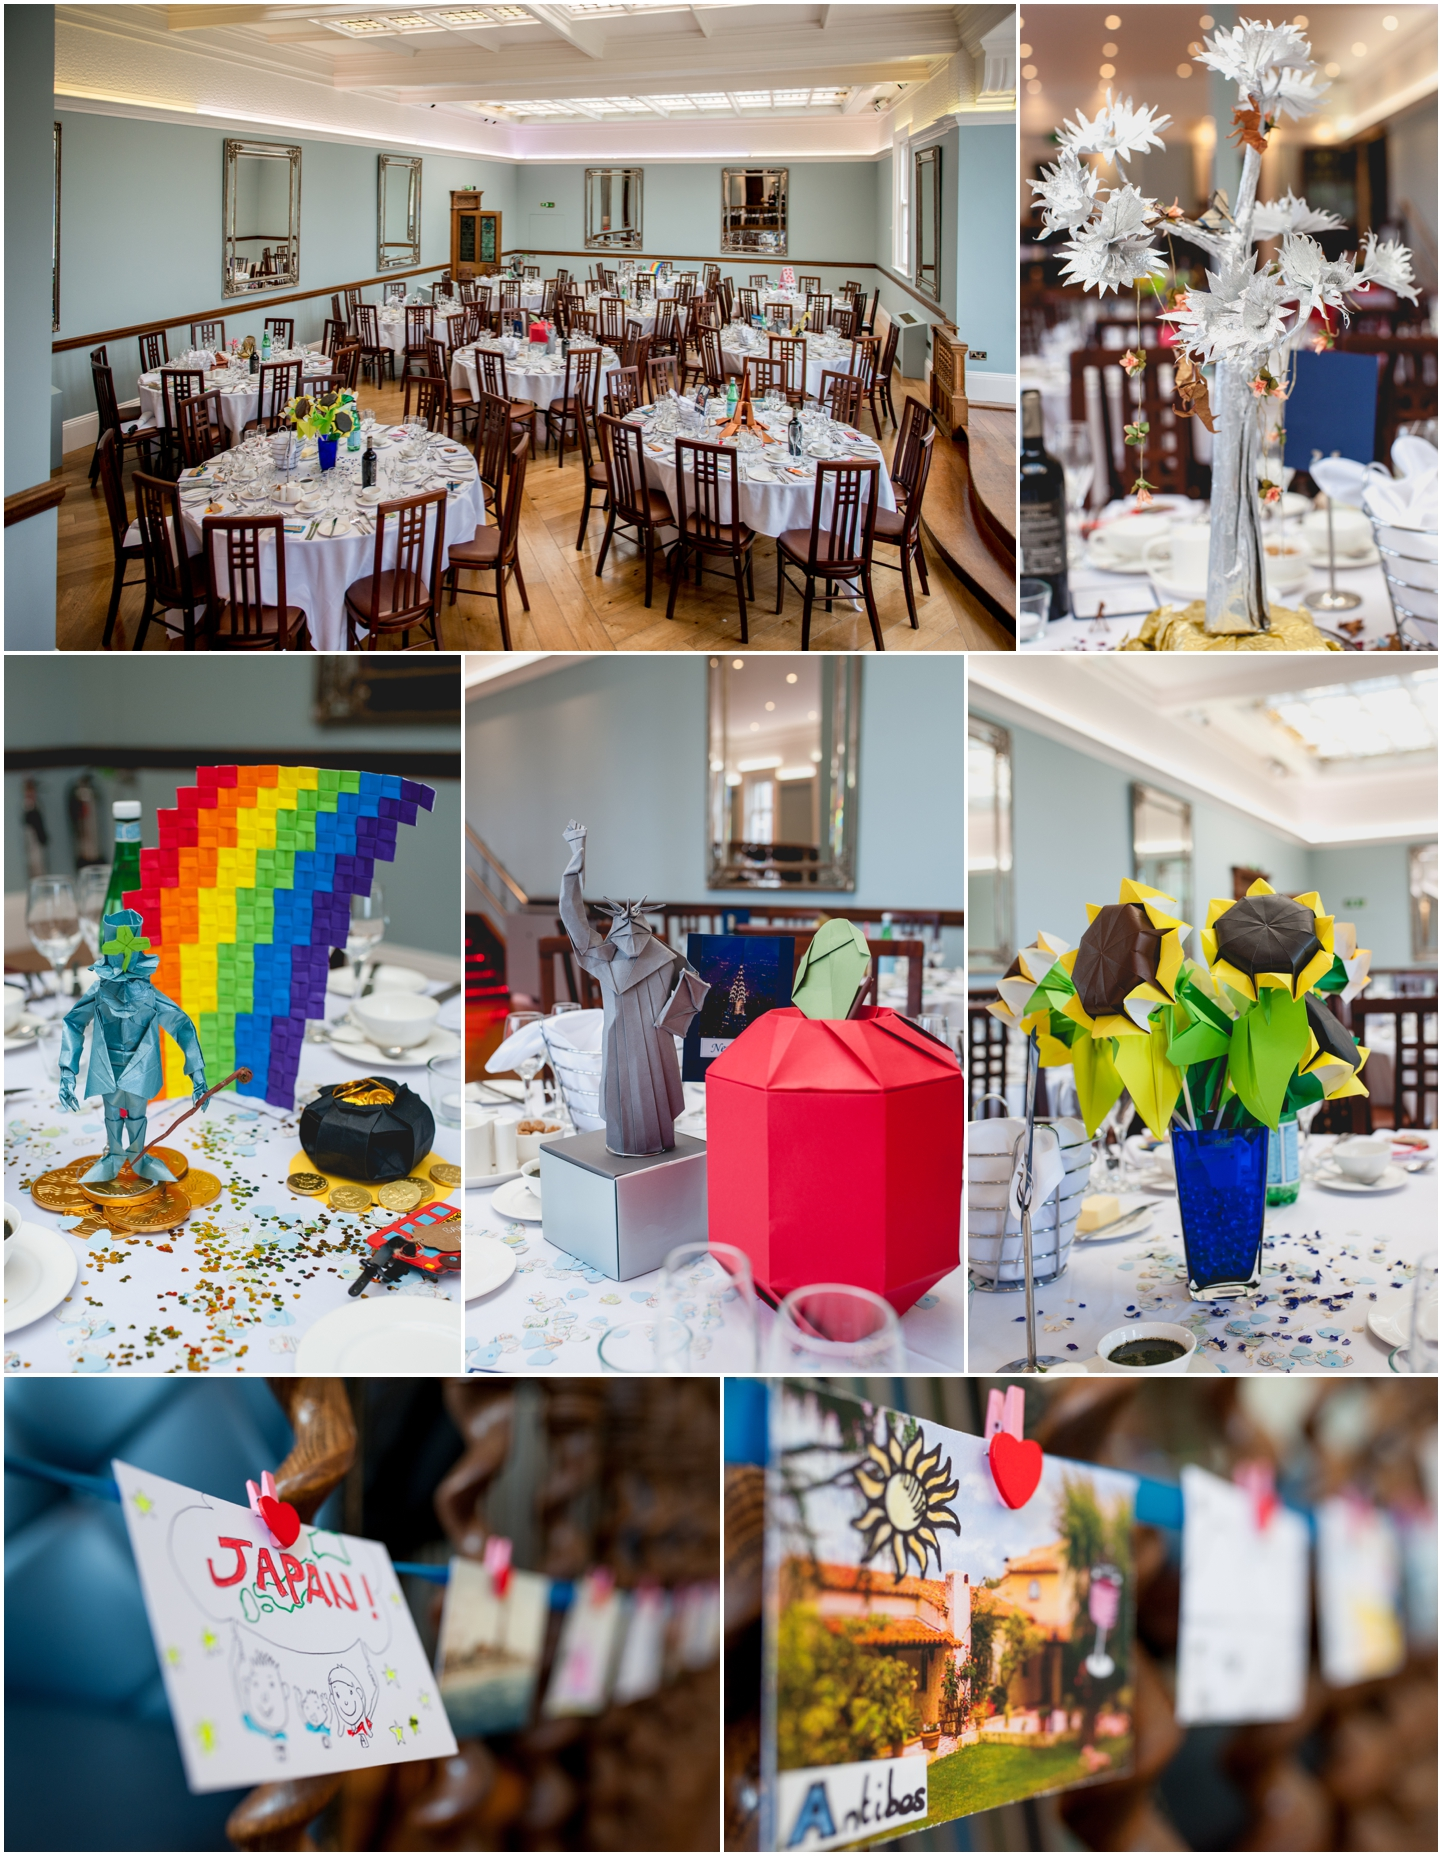 Pendrell Hall Wedding Photography by Lisa Carpenter Photography, West Midlands photographer, centrepieces, origami